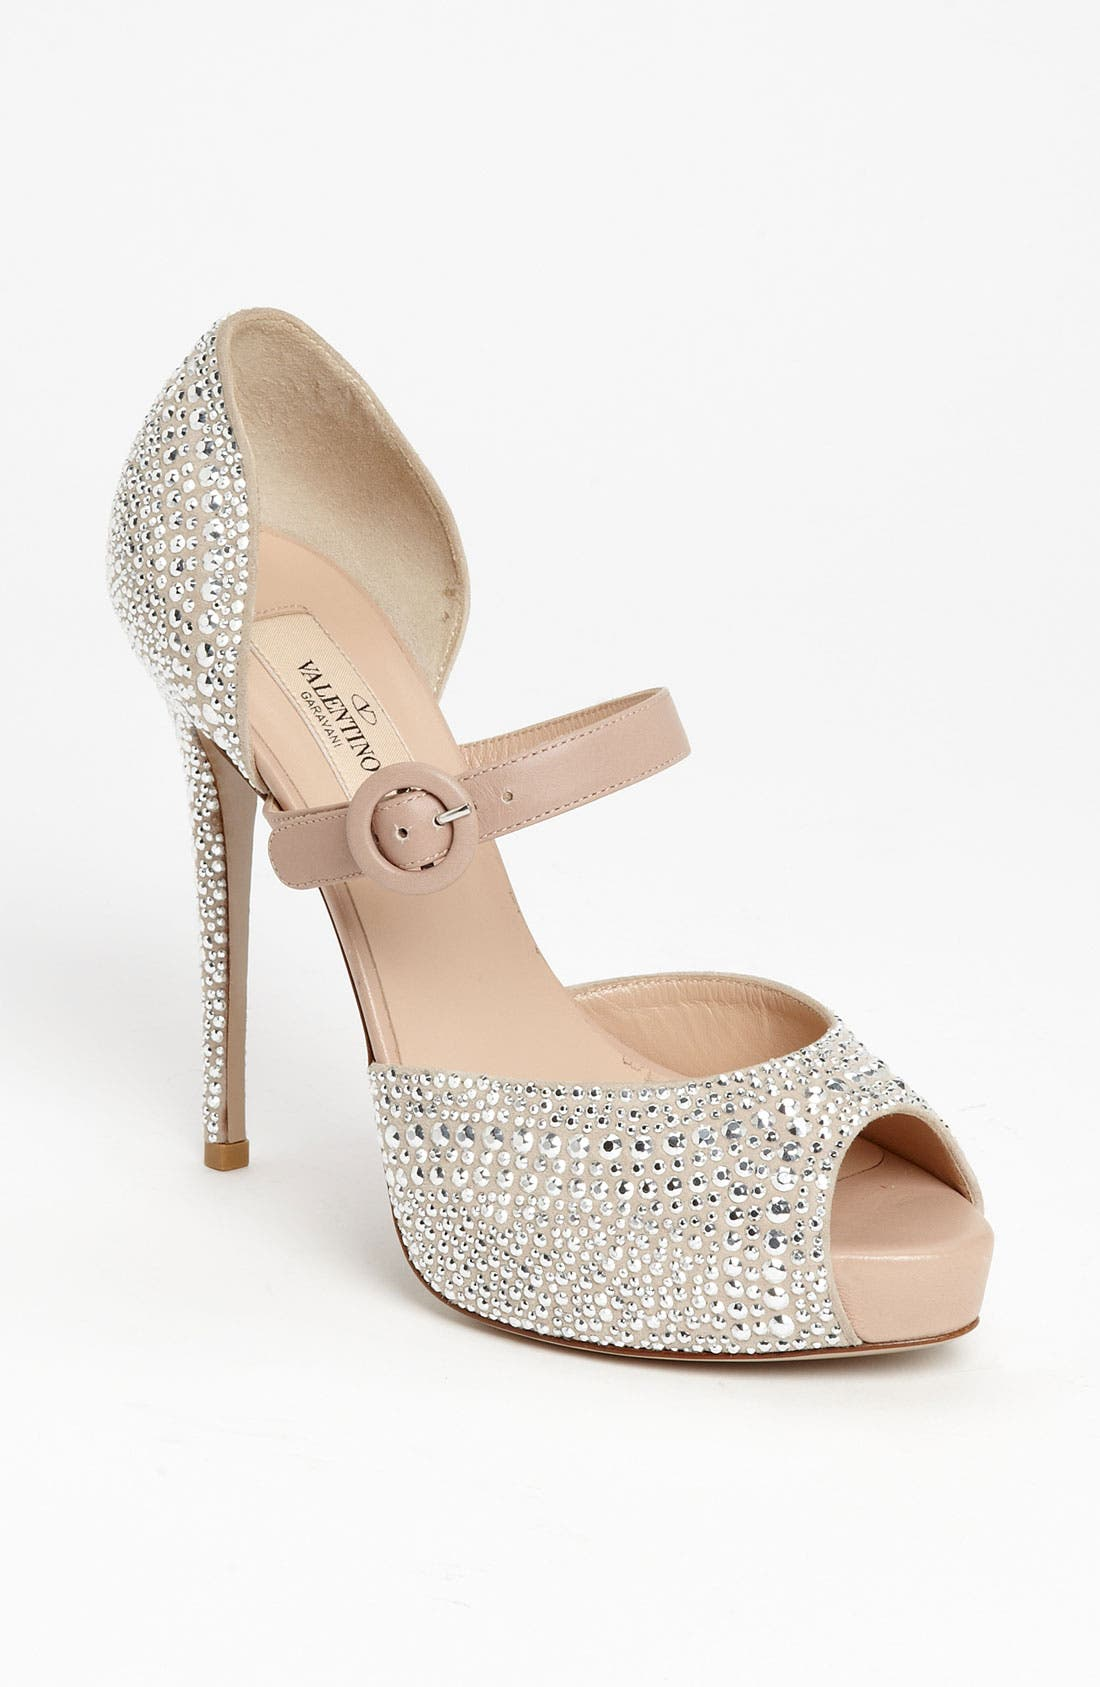 Alternate Image 1 Selected - Valentino 'Microstud' Mary Jane Pump